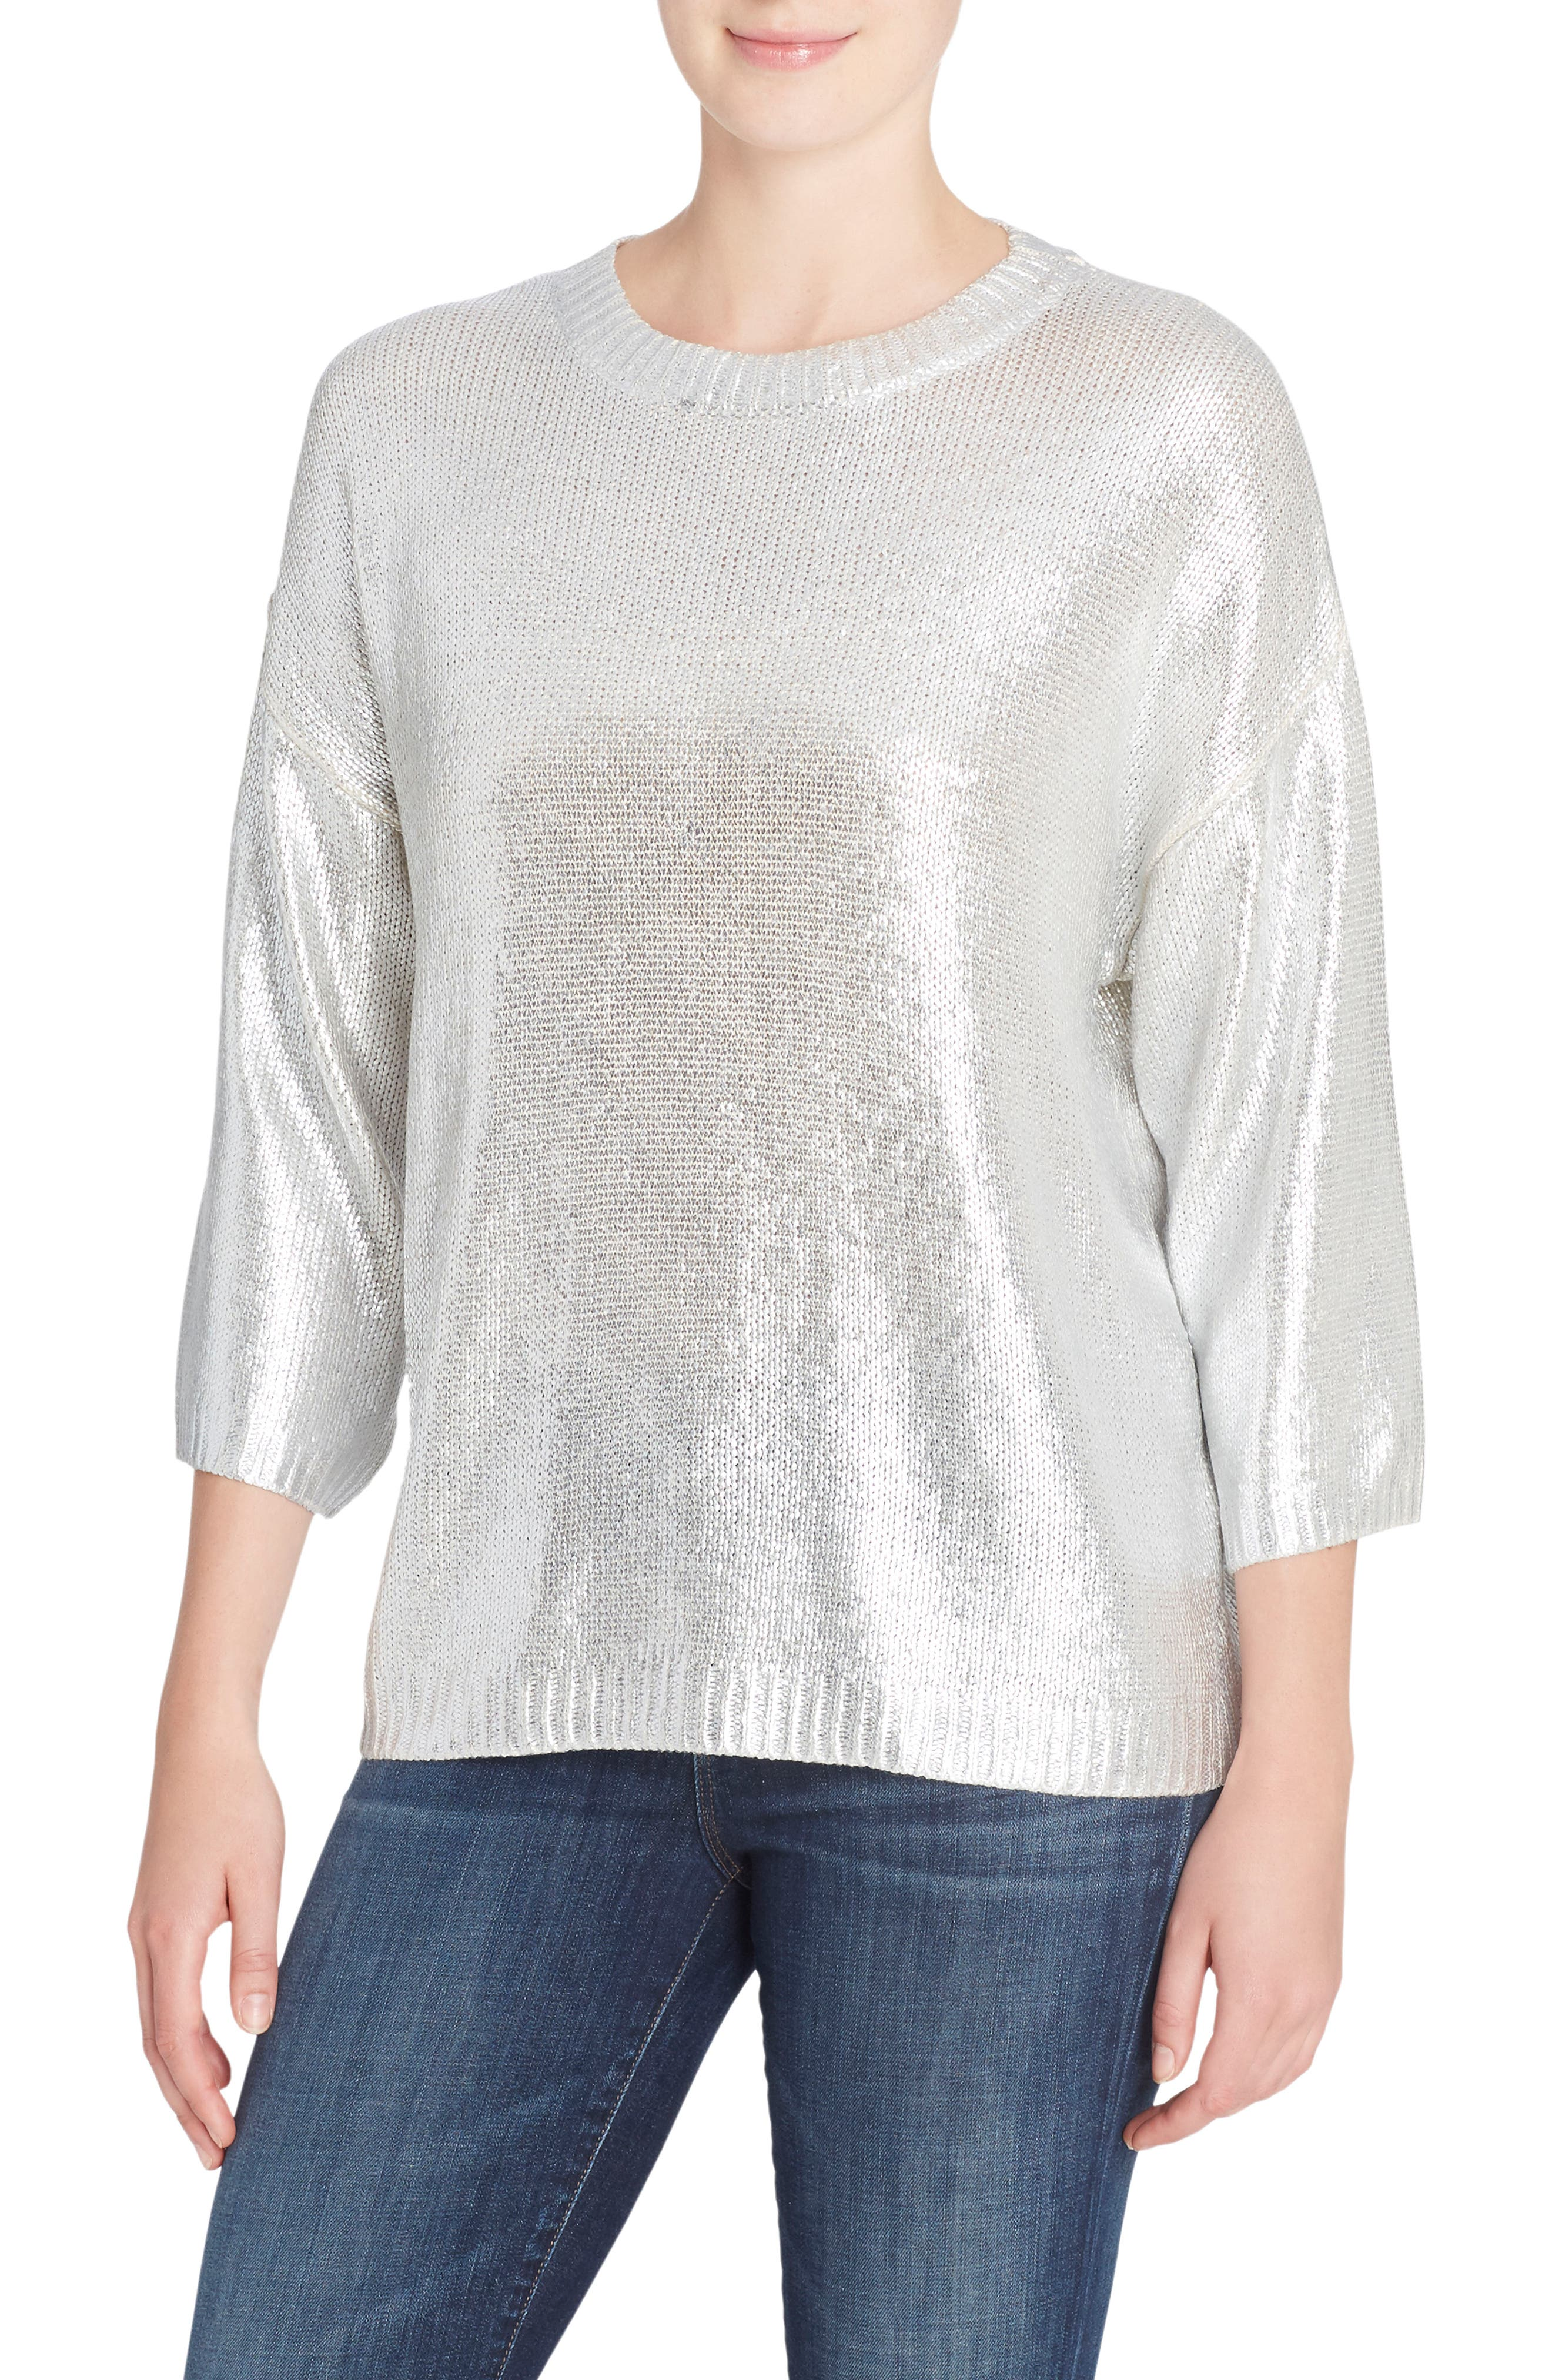 Spence Crewneck Sweater,                             Main thumbnail 1, color,                             Silver